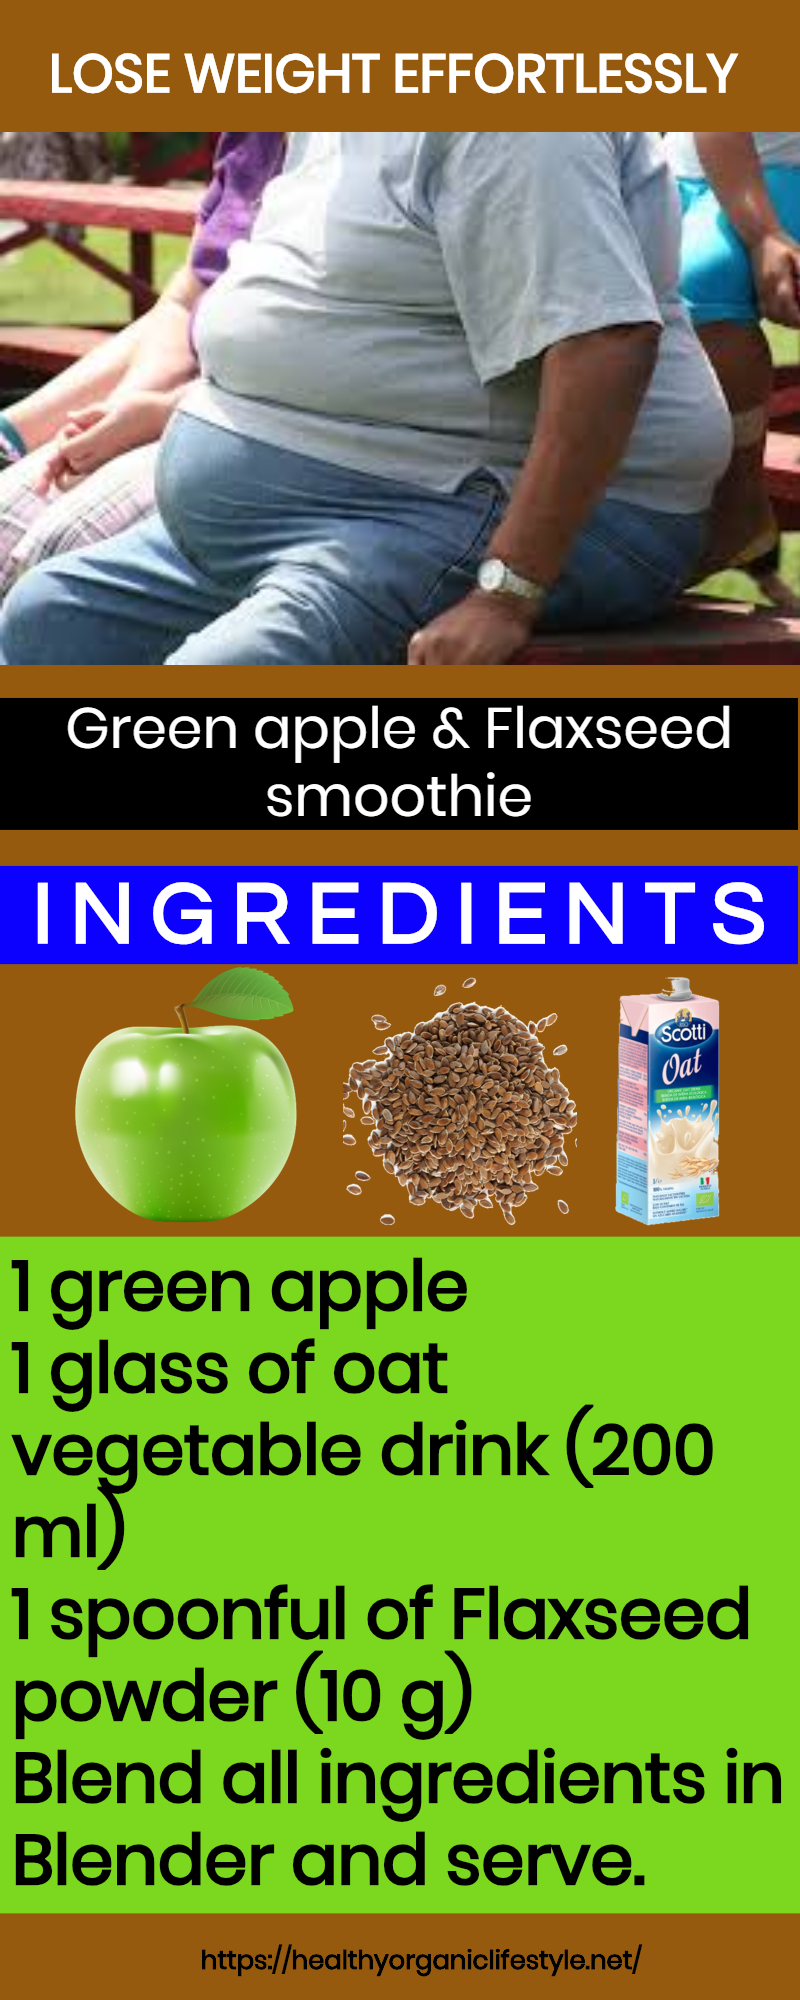 Green apple and Flaxseed smoothie